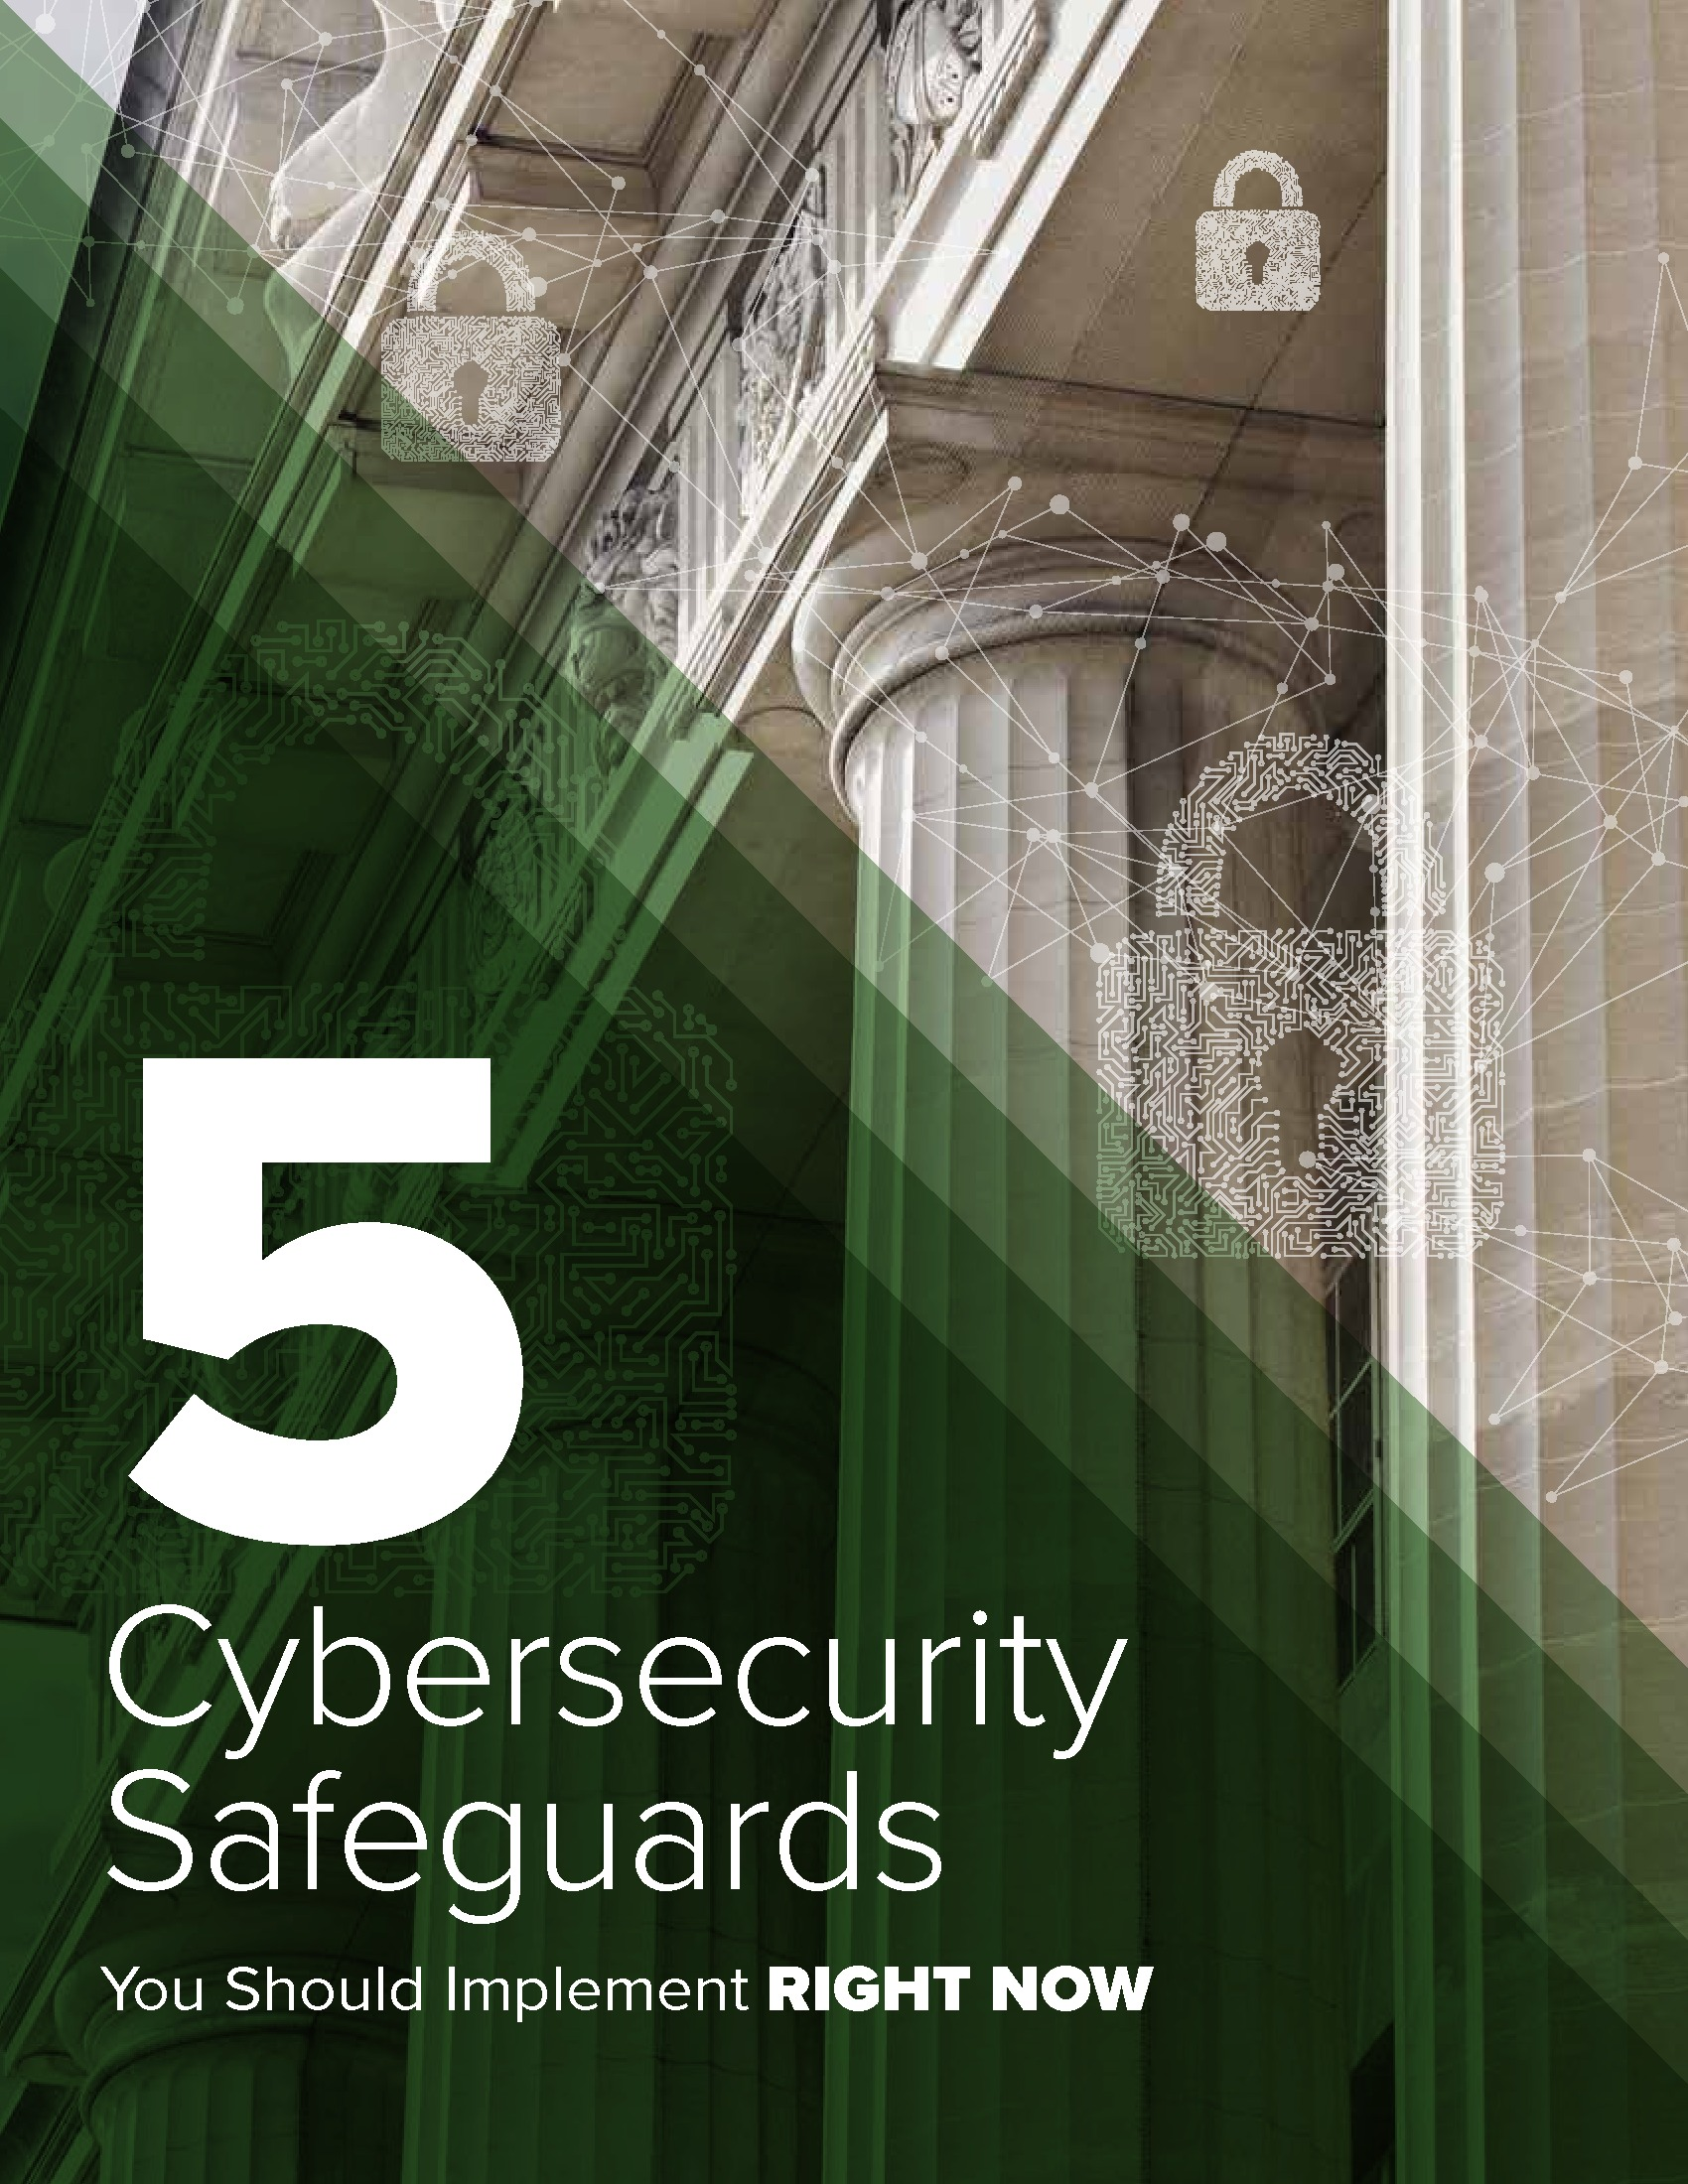 5 Cybersecurity Safeguards You Should Implement Right Now